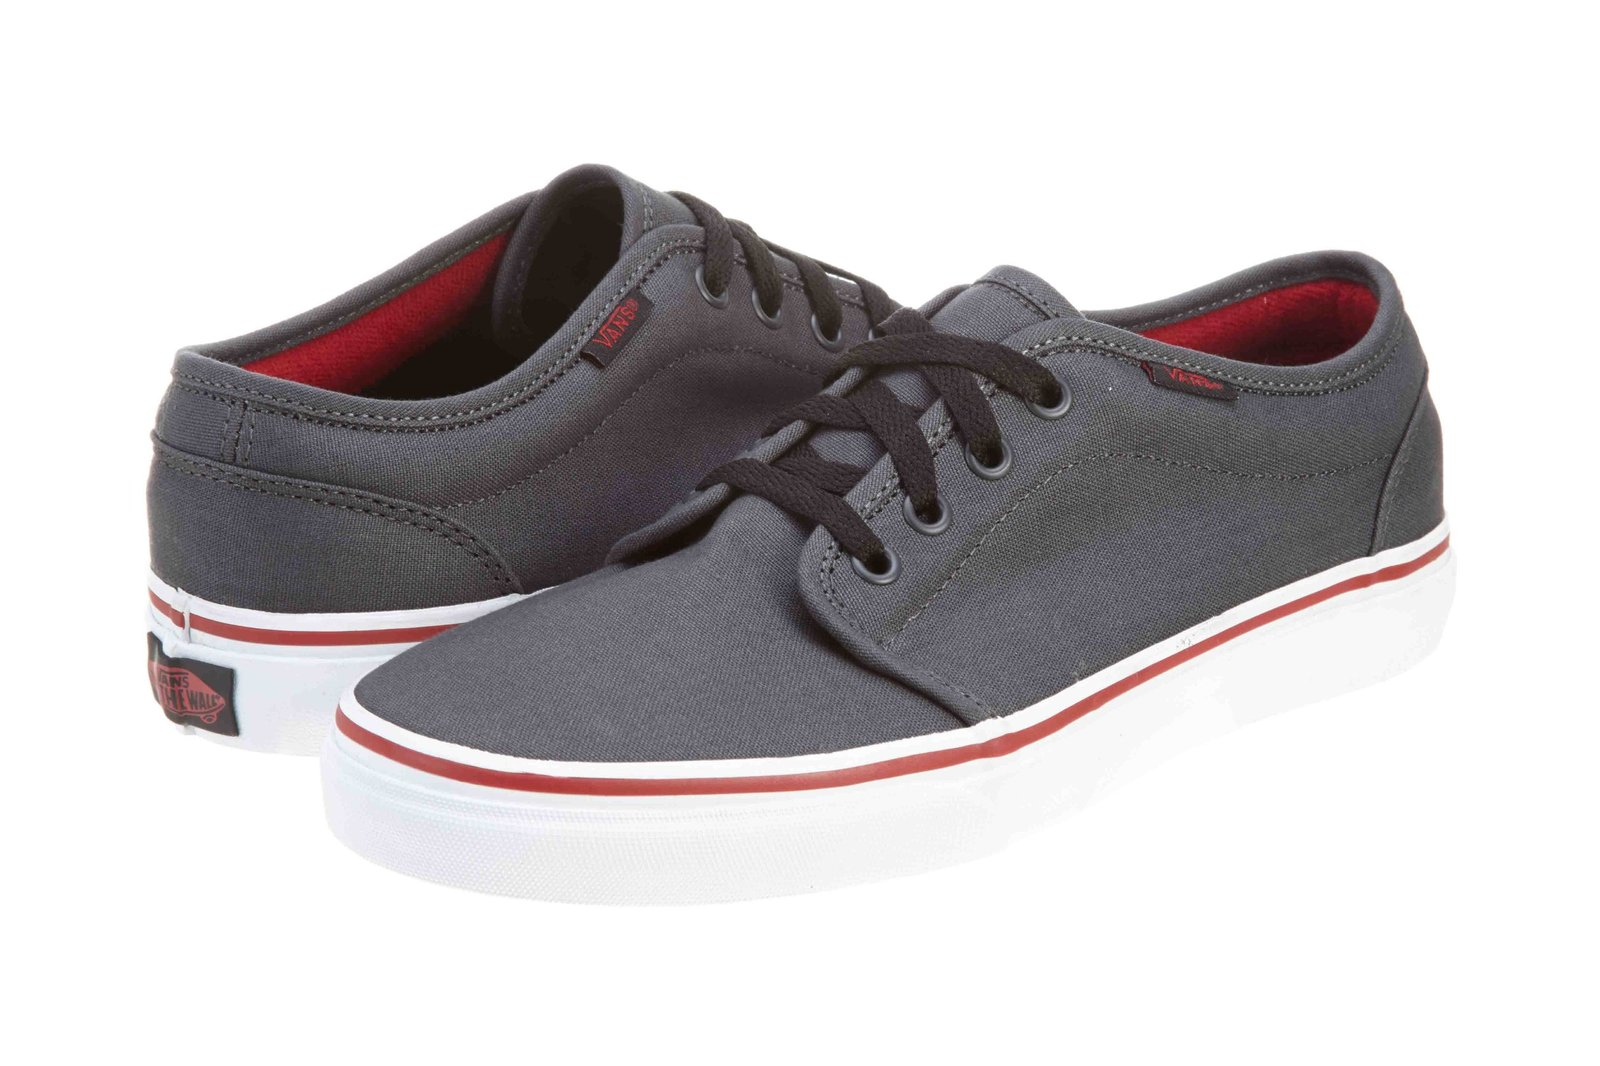 795c51c0a643 Vans VANS-VN-0NJN-6K2-4.5 Men s U 106 and 50 similar items